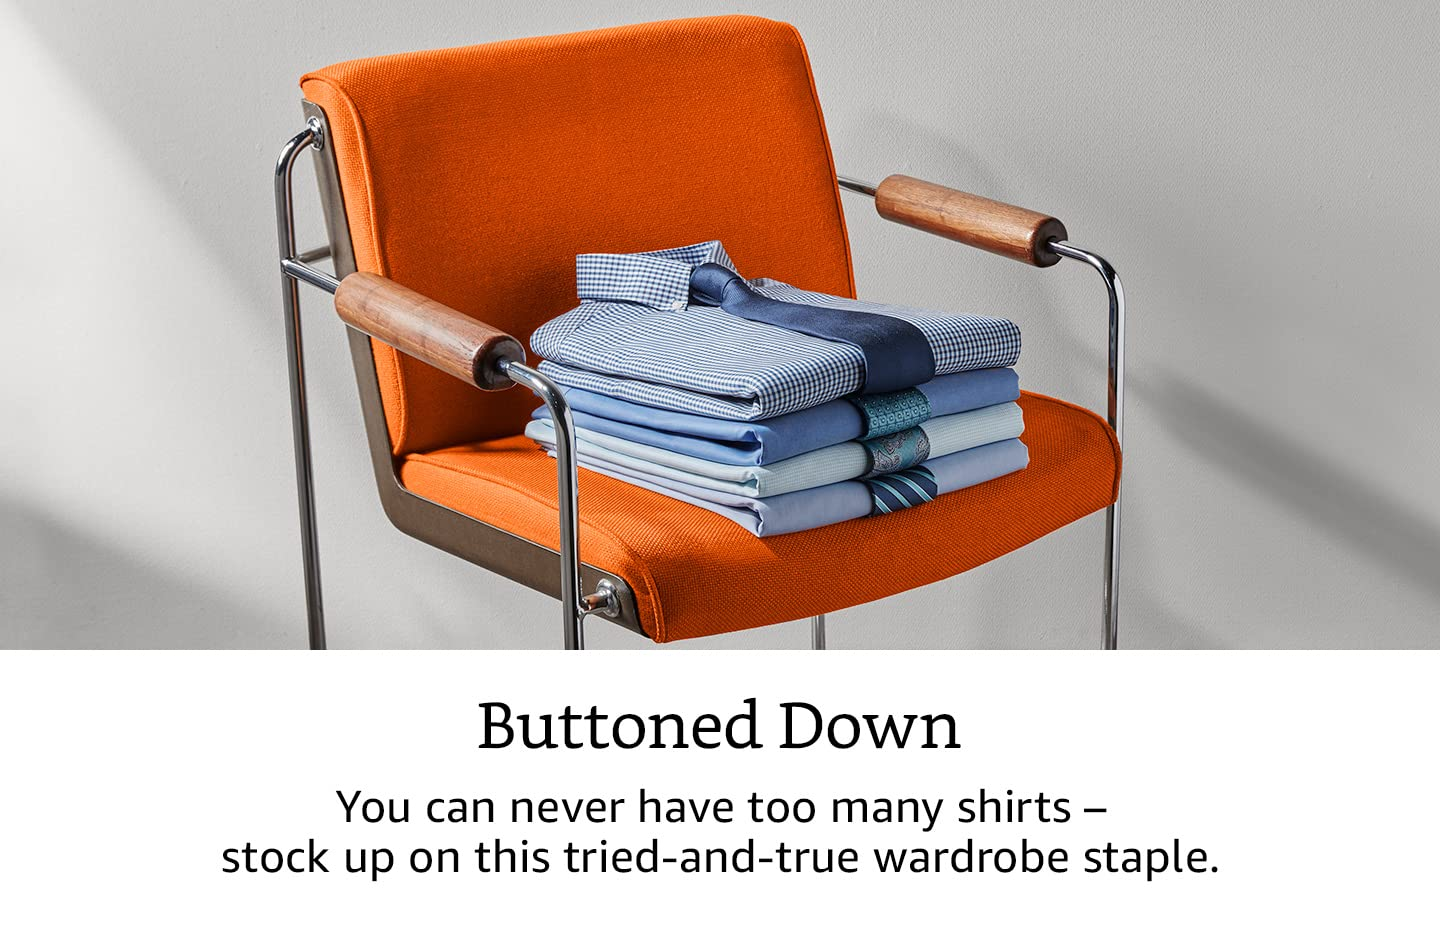 Buttoned Down